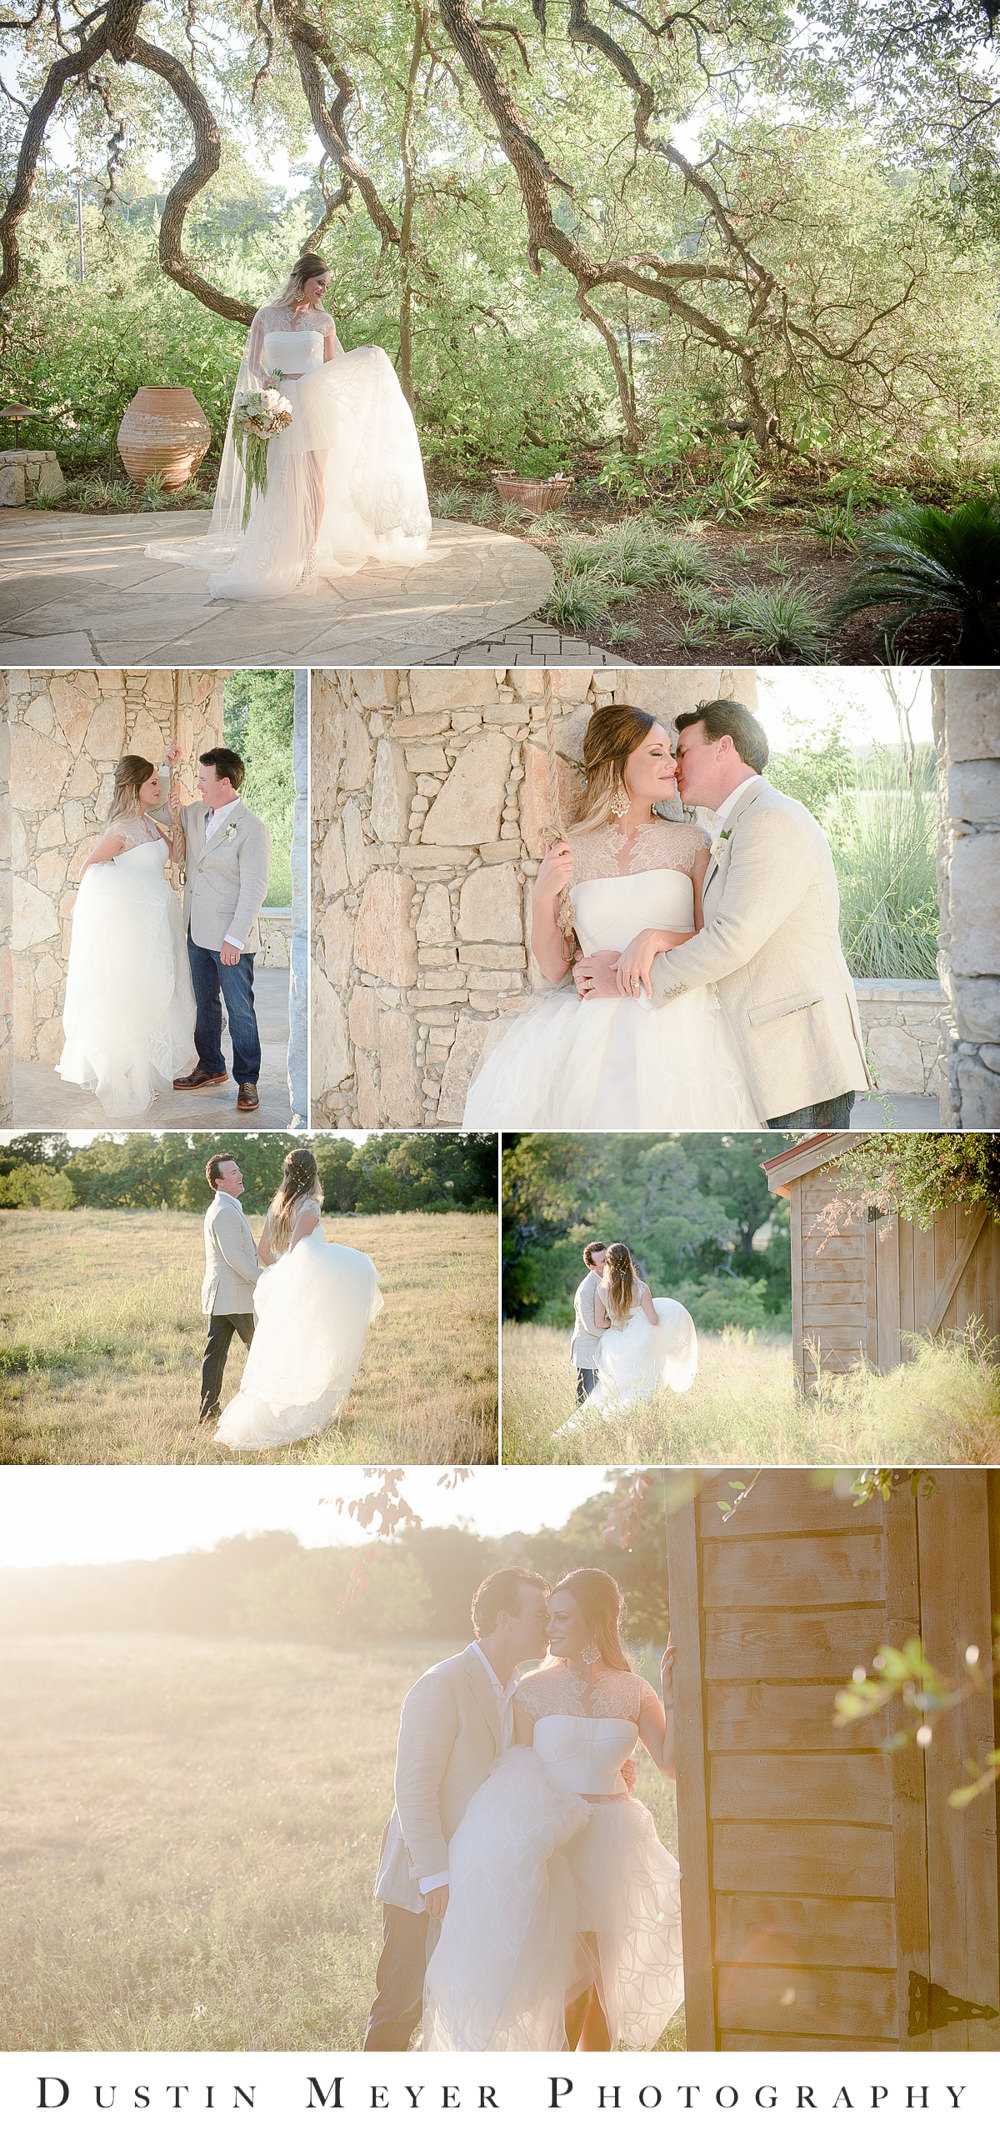 camp lucy wedding, bridal gown, wedding portraits, bride and groom, groomsmen attire, wedding gown, outdoors, natural light, hill country wedding, sacred oaks ceremony